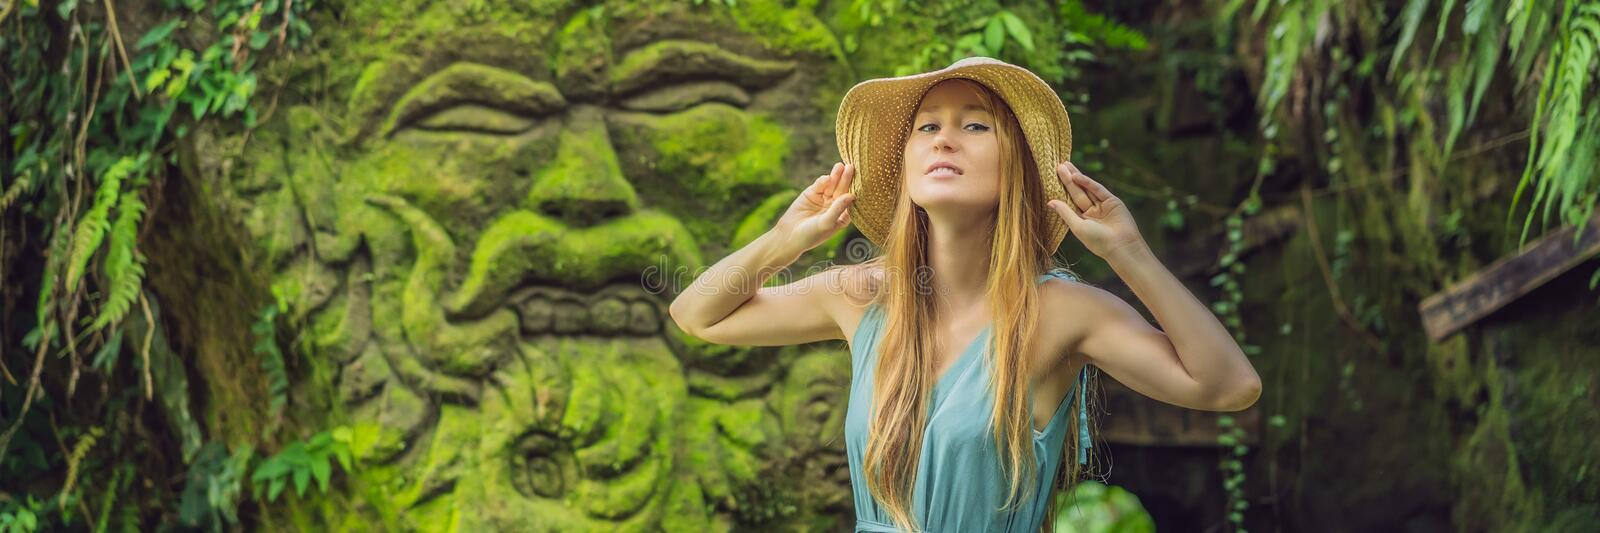 Young woman traveler in a Balinese garden overgrown with moss. Travel to Bali concept BANNER, LONG FORMAT. Young woman traveler in a Balinese garden overgrown royalty free stock photo